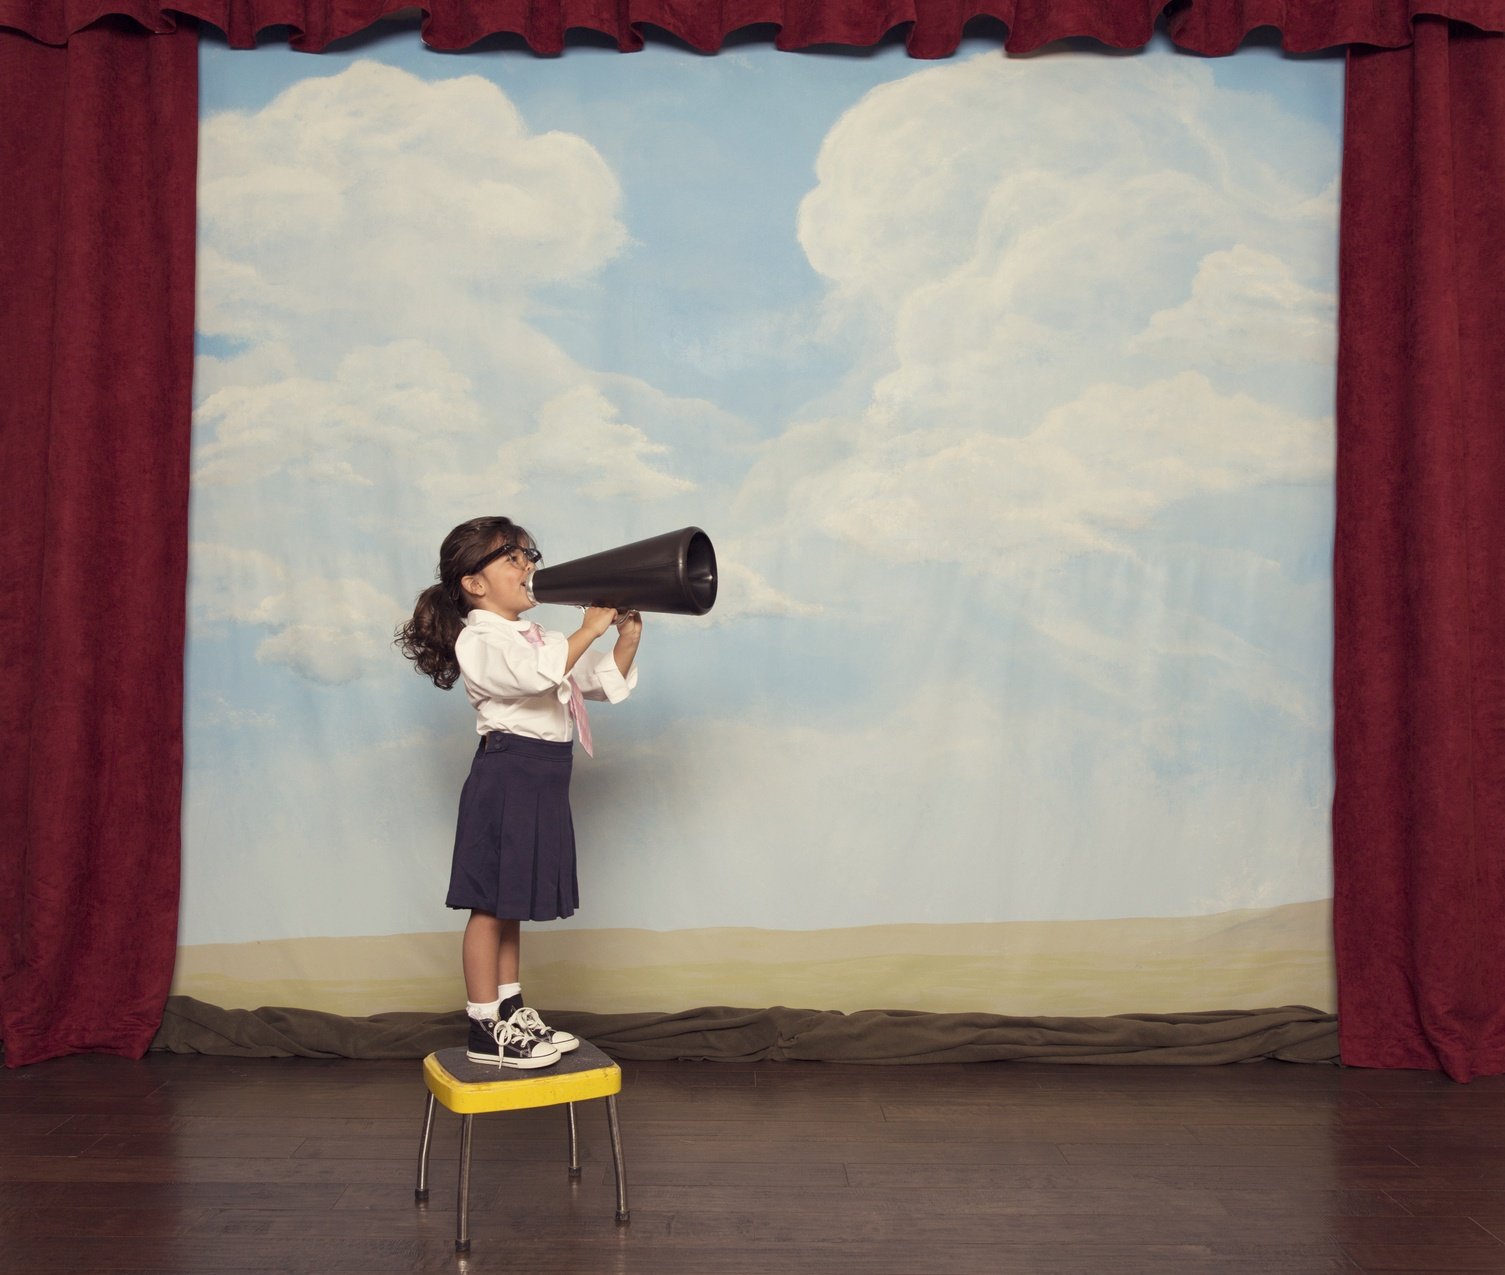 A young girl makes sure to have her voice heard for her business.